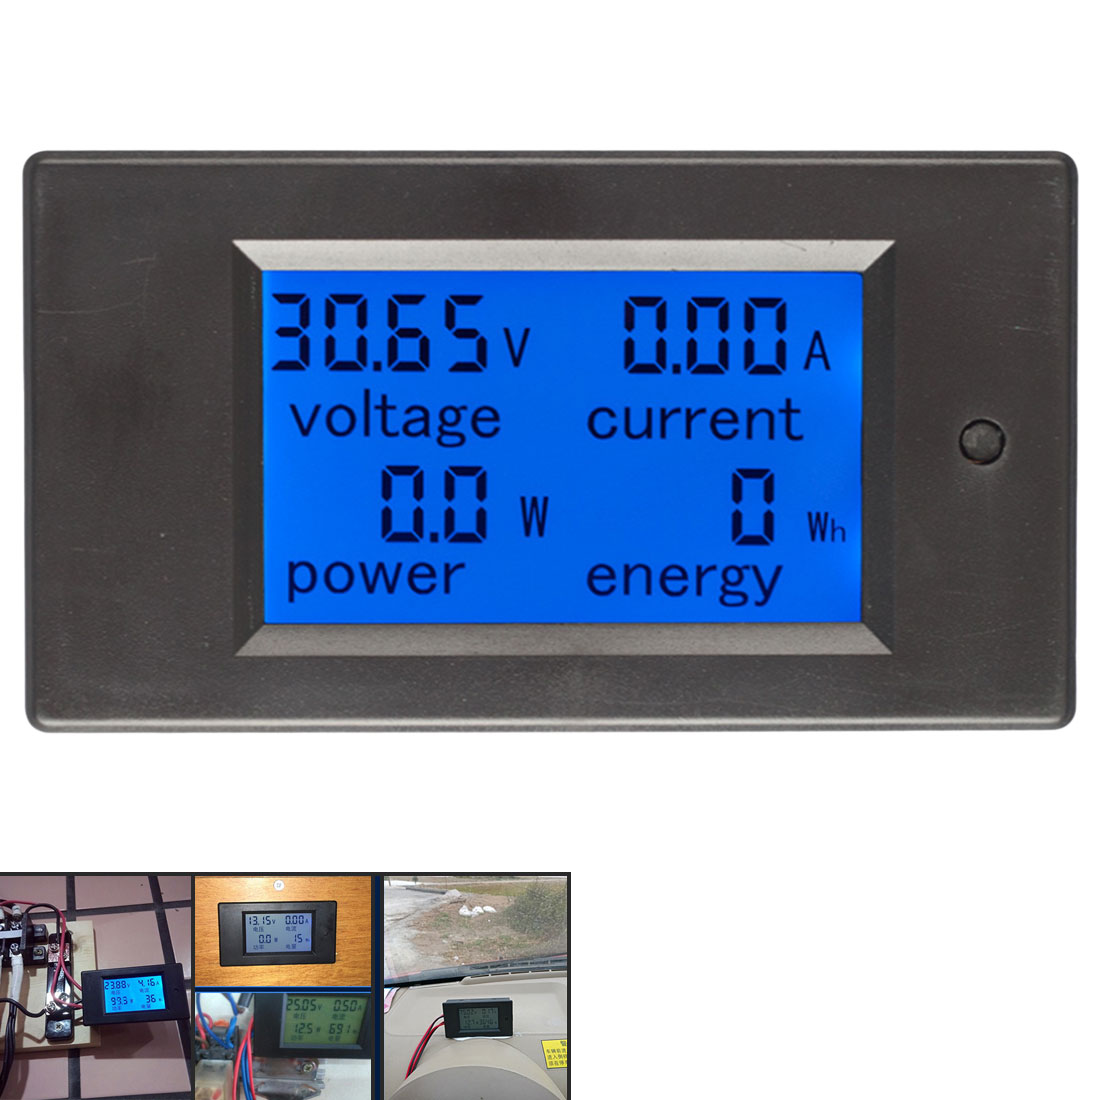 Digital Current Voltage Power Energy Meter DC 6.5-100V 0-100A LCD Display Multimeter Ammeter Voltmeter 100A Current Shunt dc 6 5 100v 0 100a lcd display digital current voltage power energy meter multimeter ammeter voltmeter w 100a current shunt